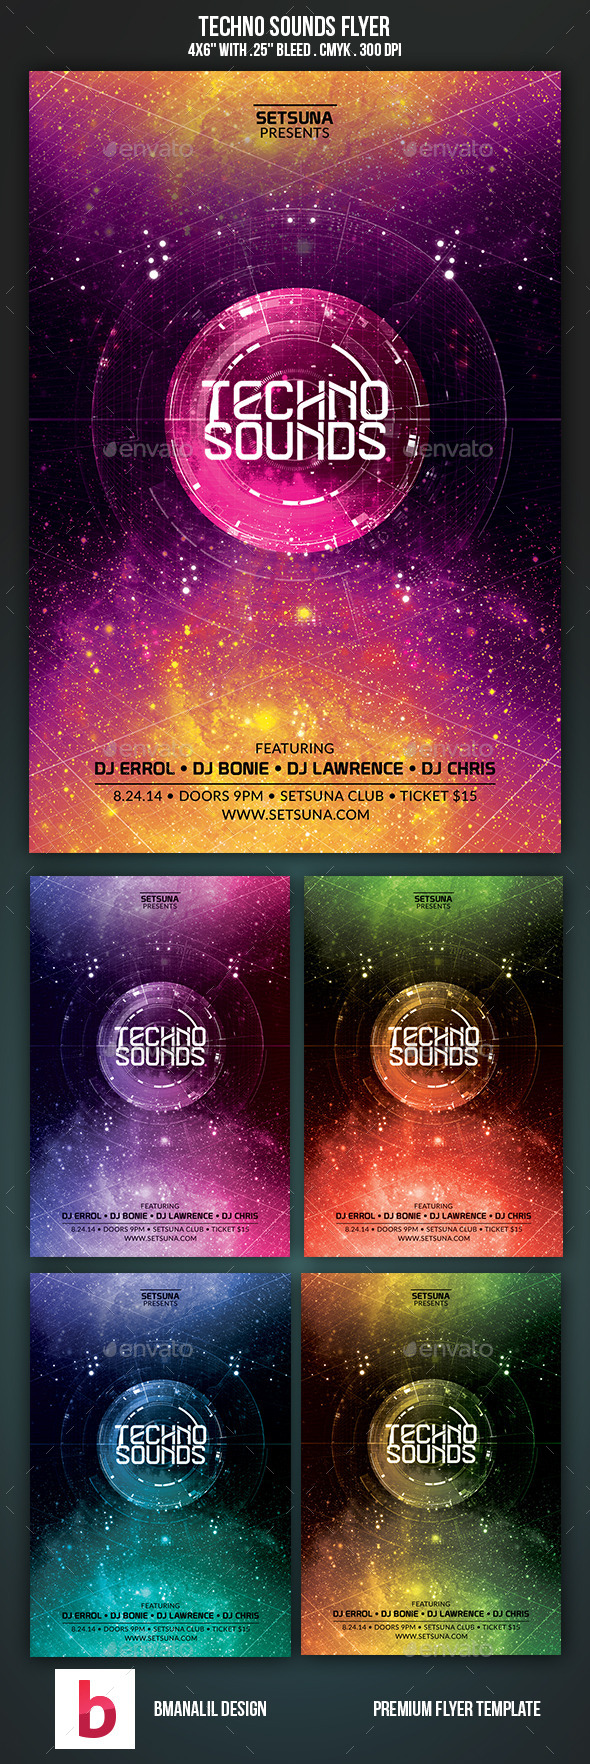 GraphicRiver Techno Sounds Flyer 9338555